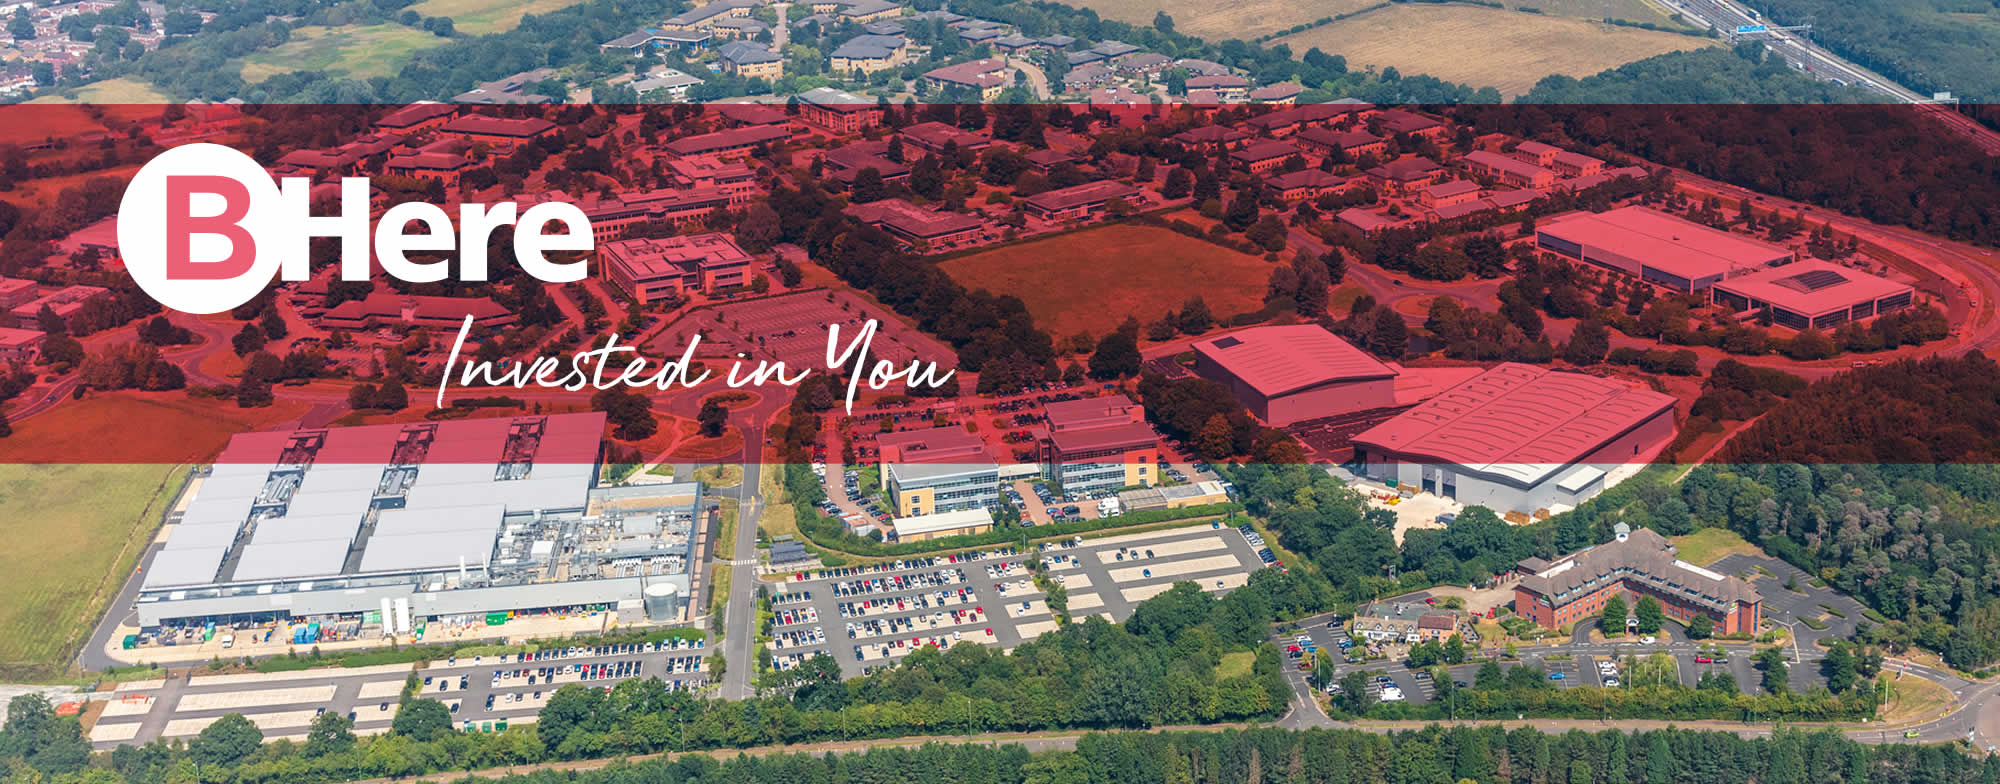 Birmingham Business Park - BHere. Invested in you